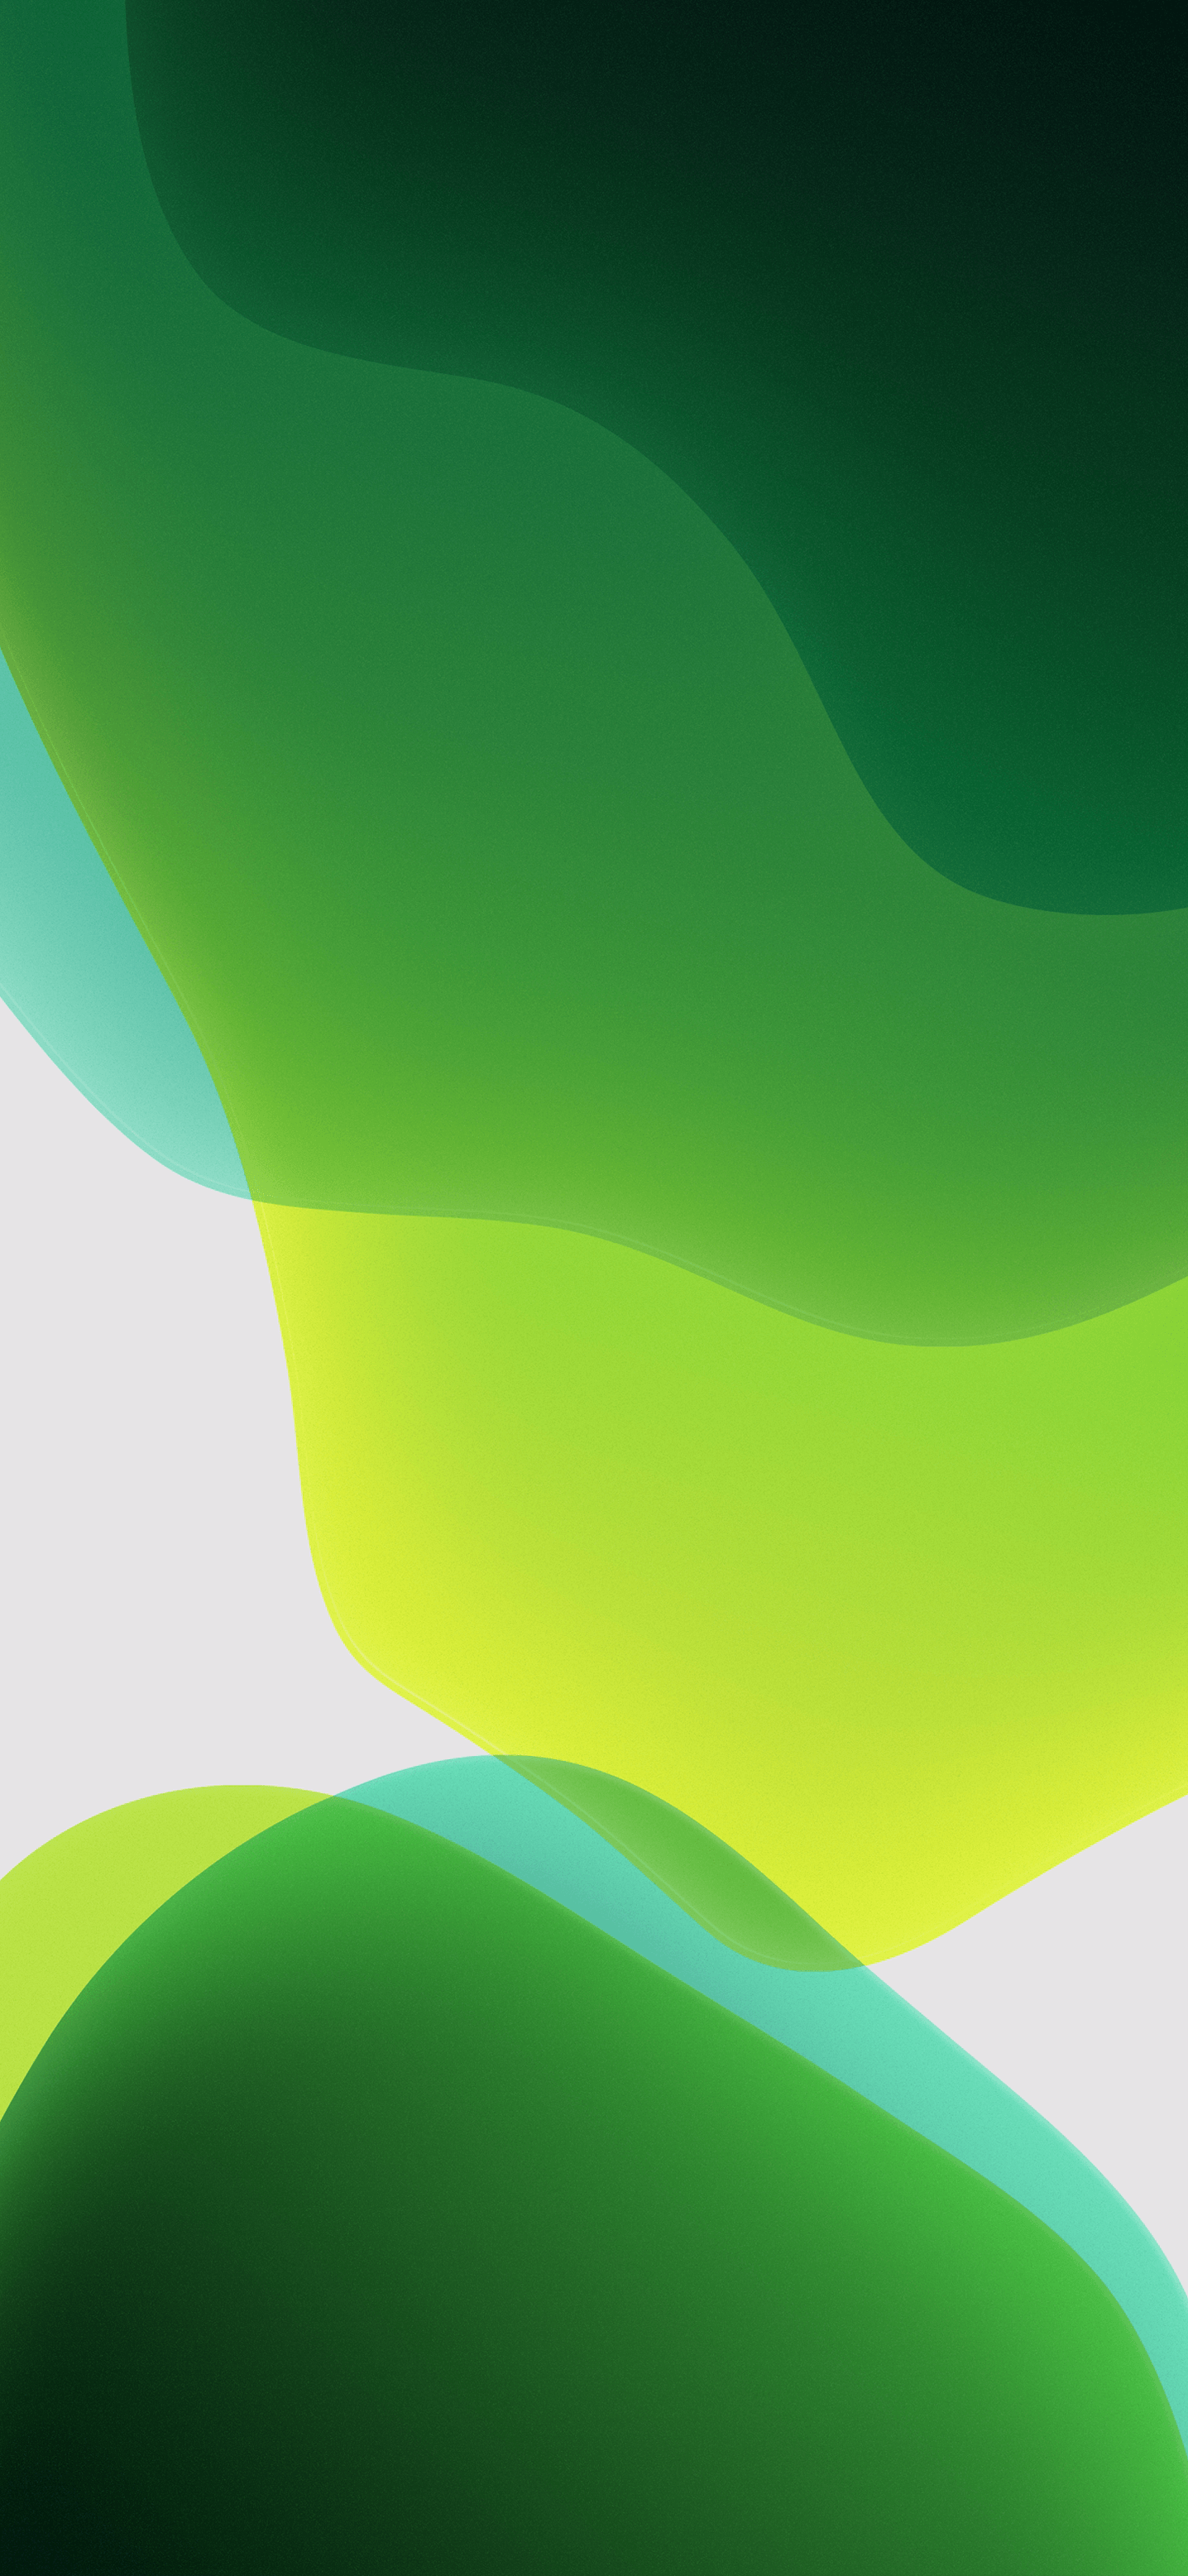 Ios 13 Wallpapers Wallpaper Cave